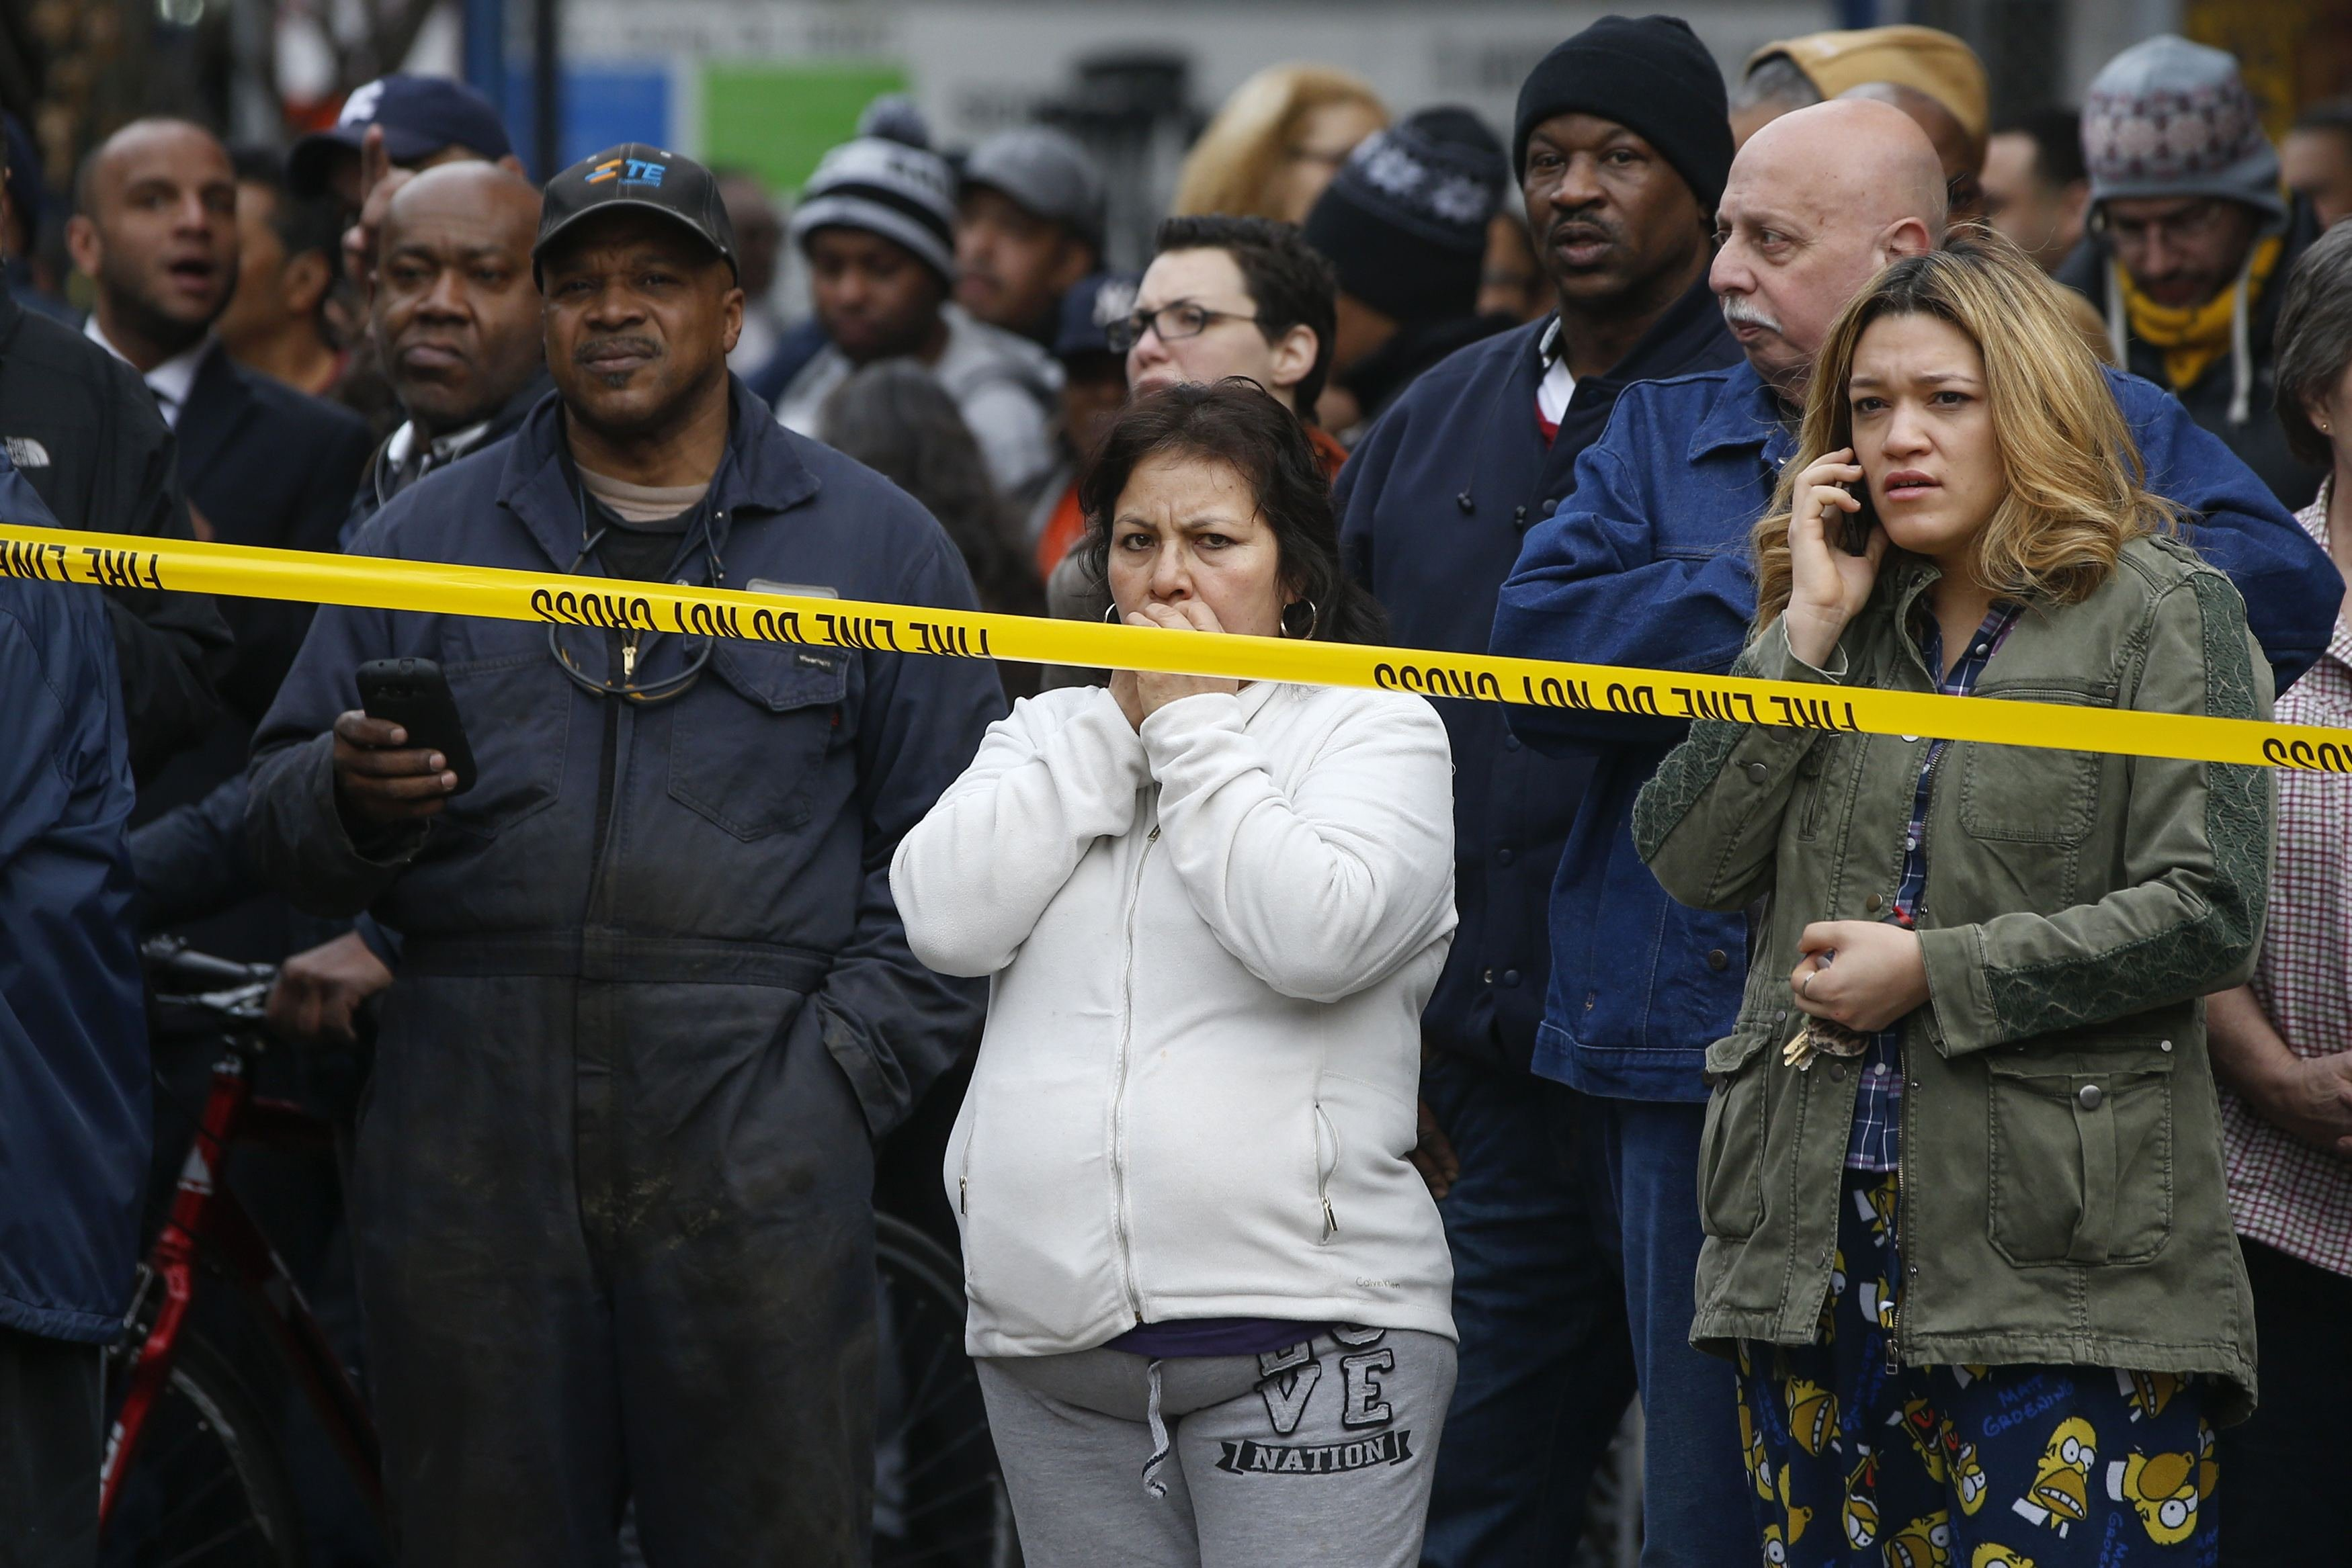 Residents watch as firefighters work at the scene of a building collapse in New York, March 12, 2014.